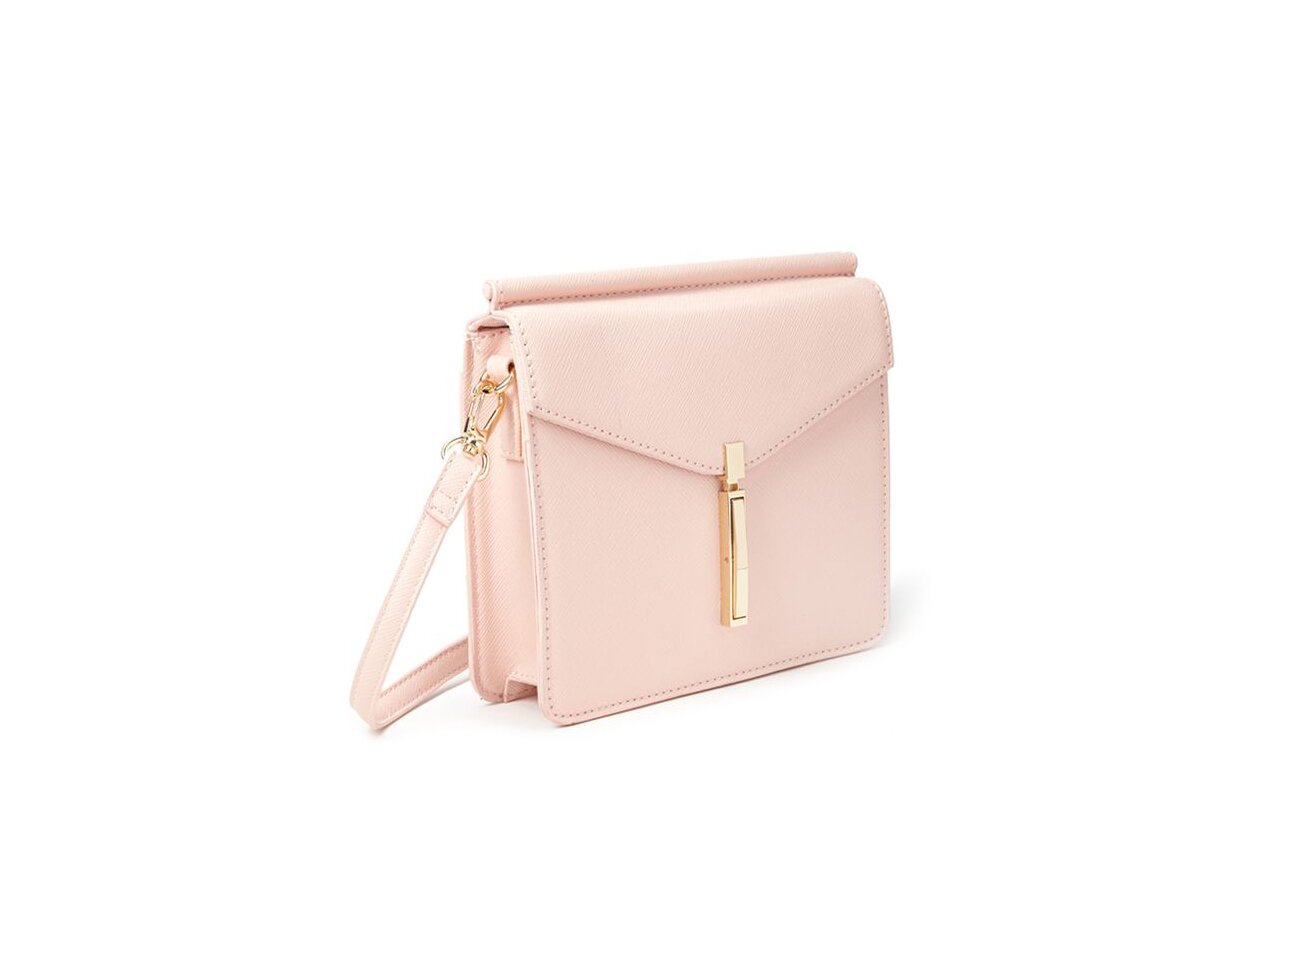 96adb6a9be Forever 21 Structured Envelope Crossbody